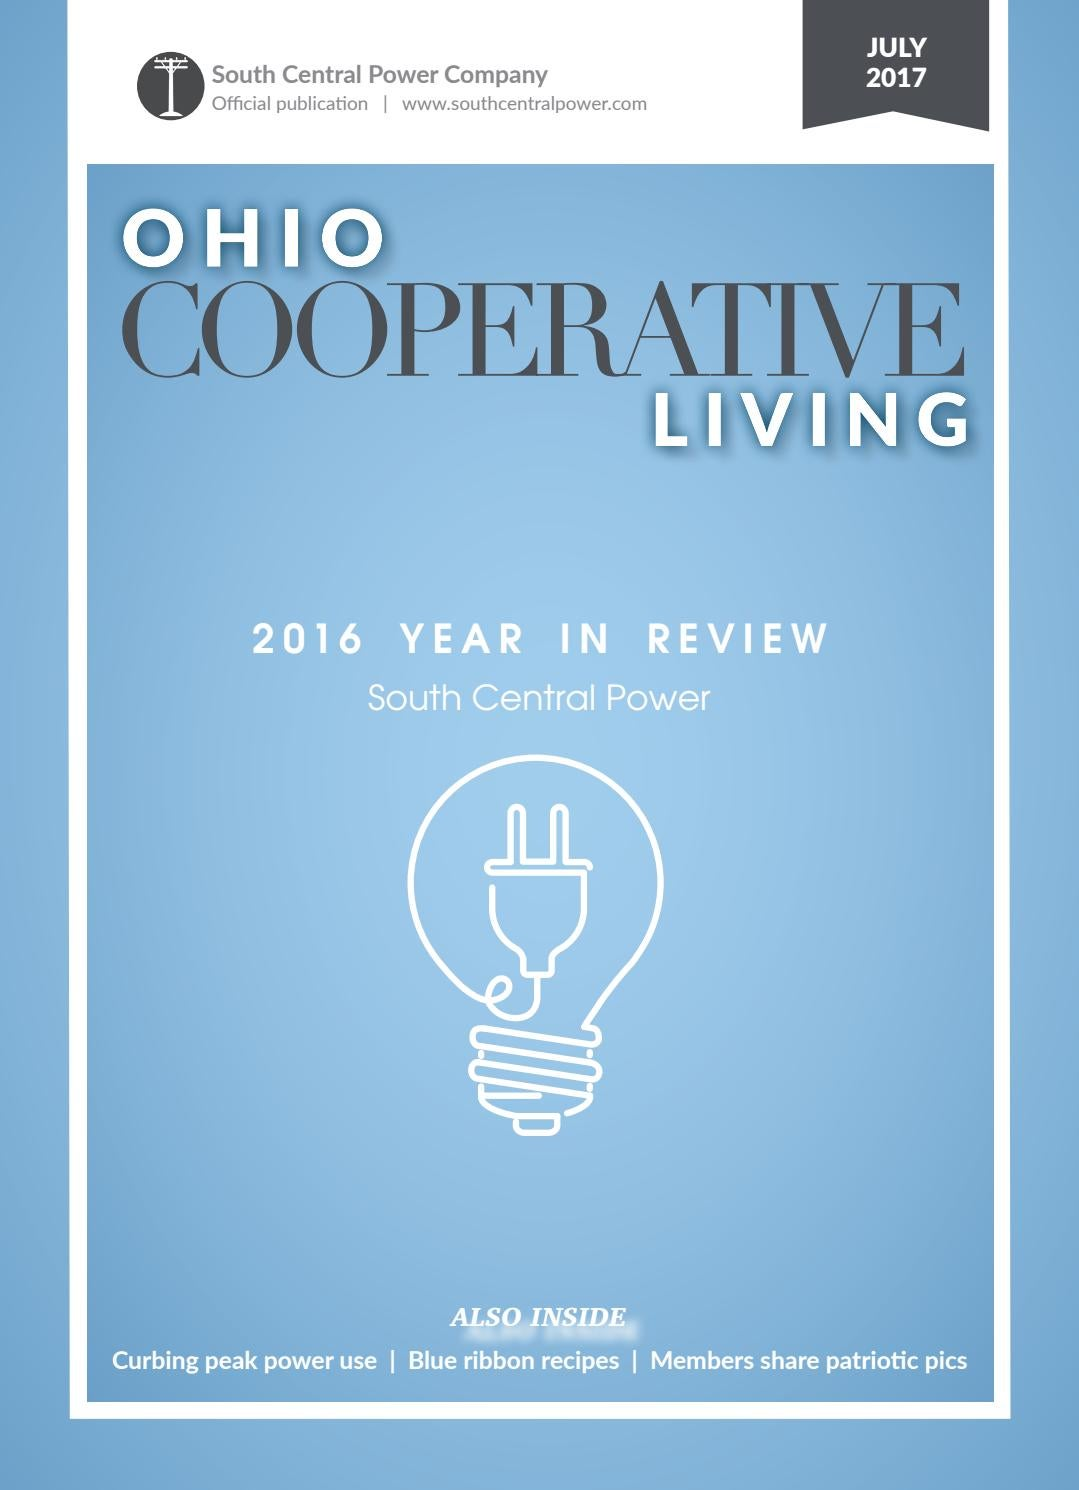 Ohio cooperative living july 2017 south central by Ohio